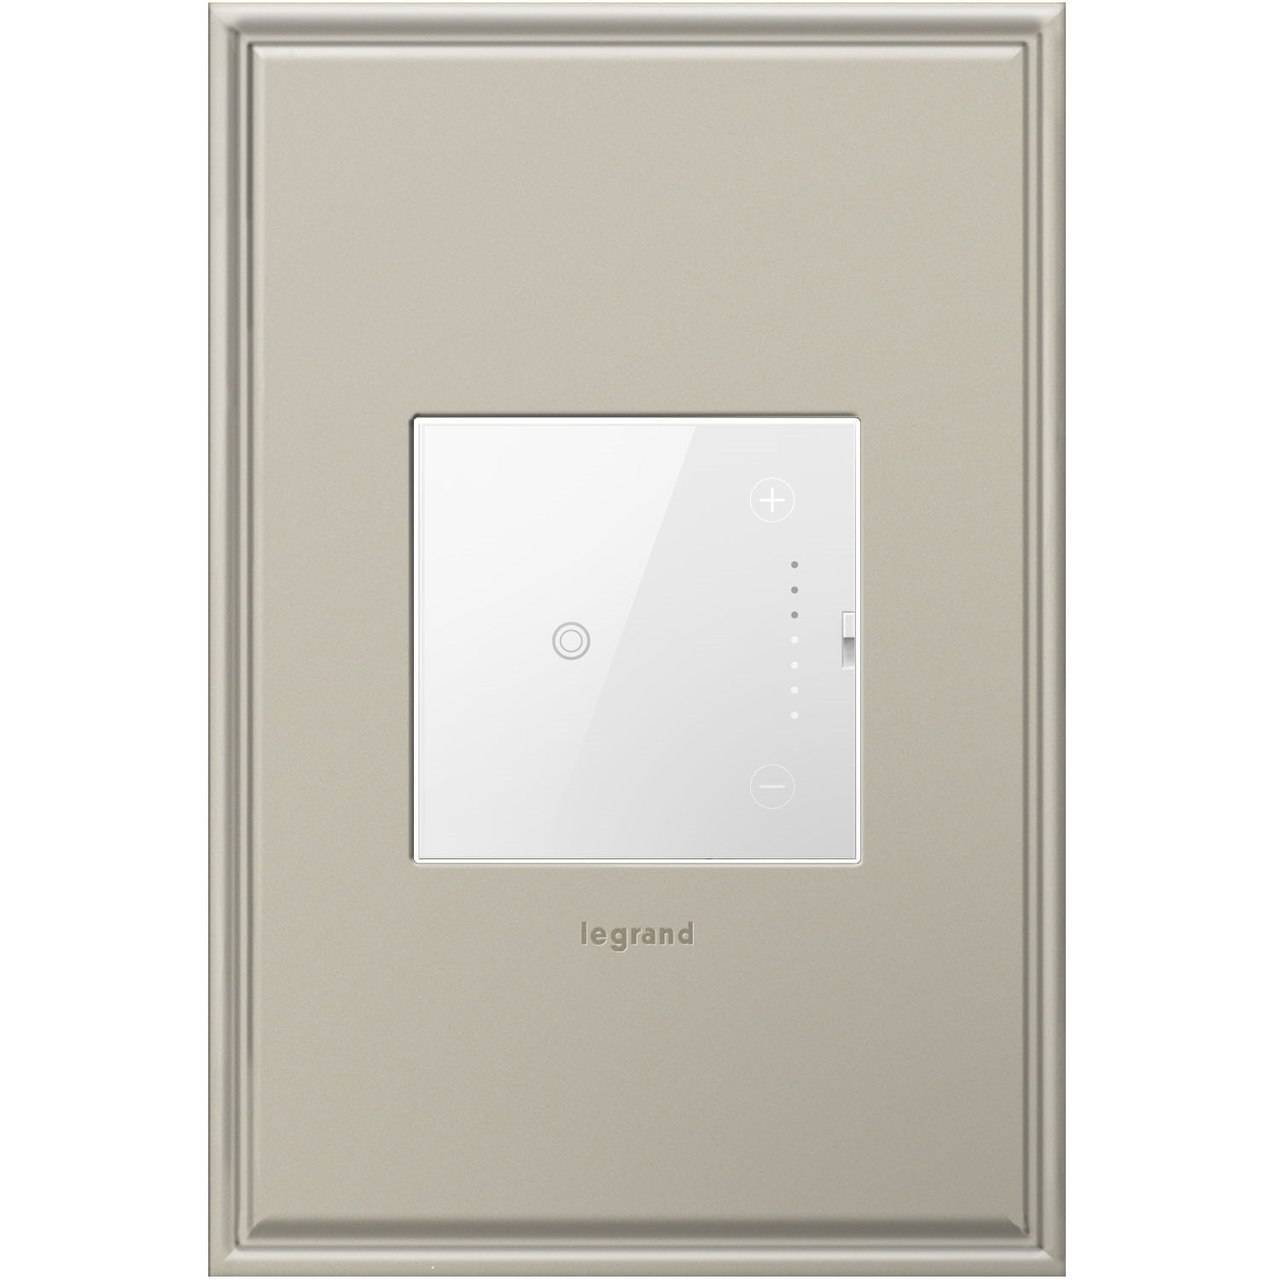 Legrand adorne touch dimmer for lighting control system